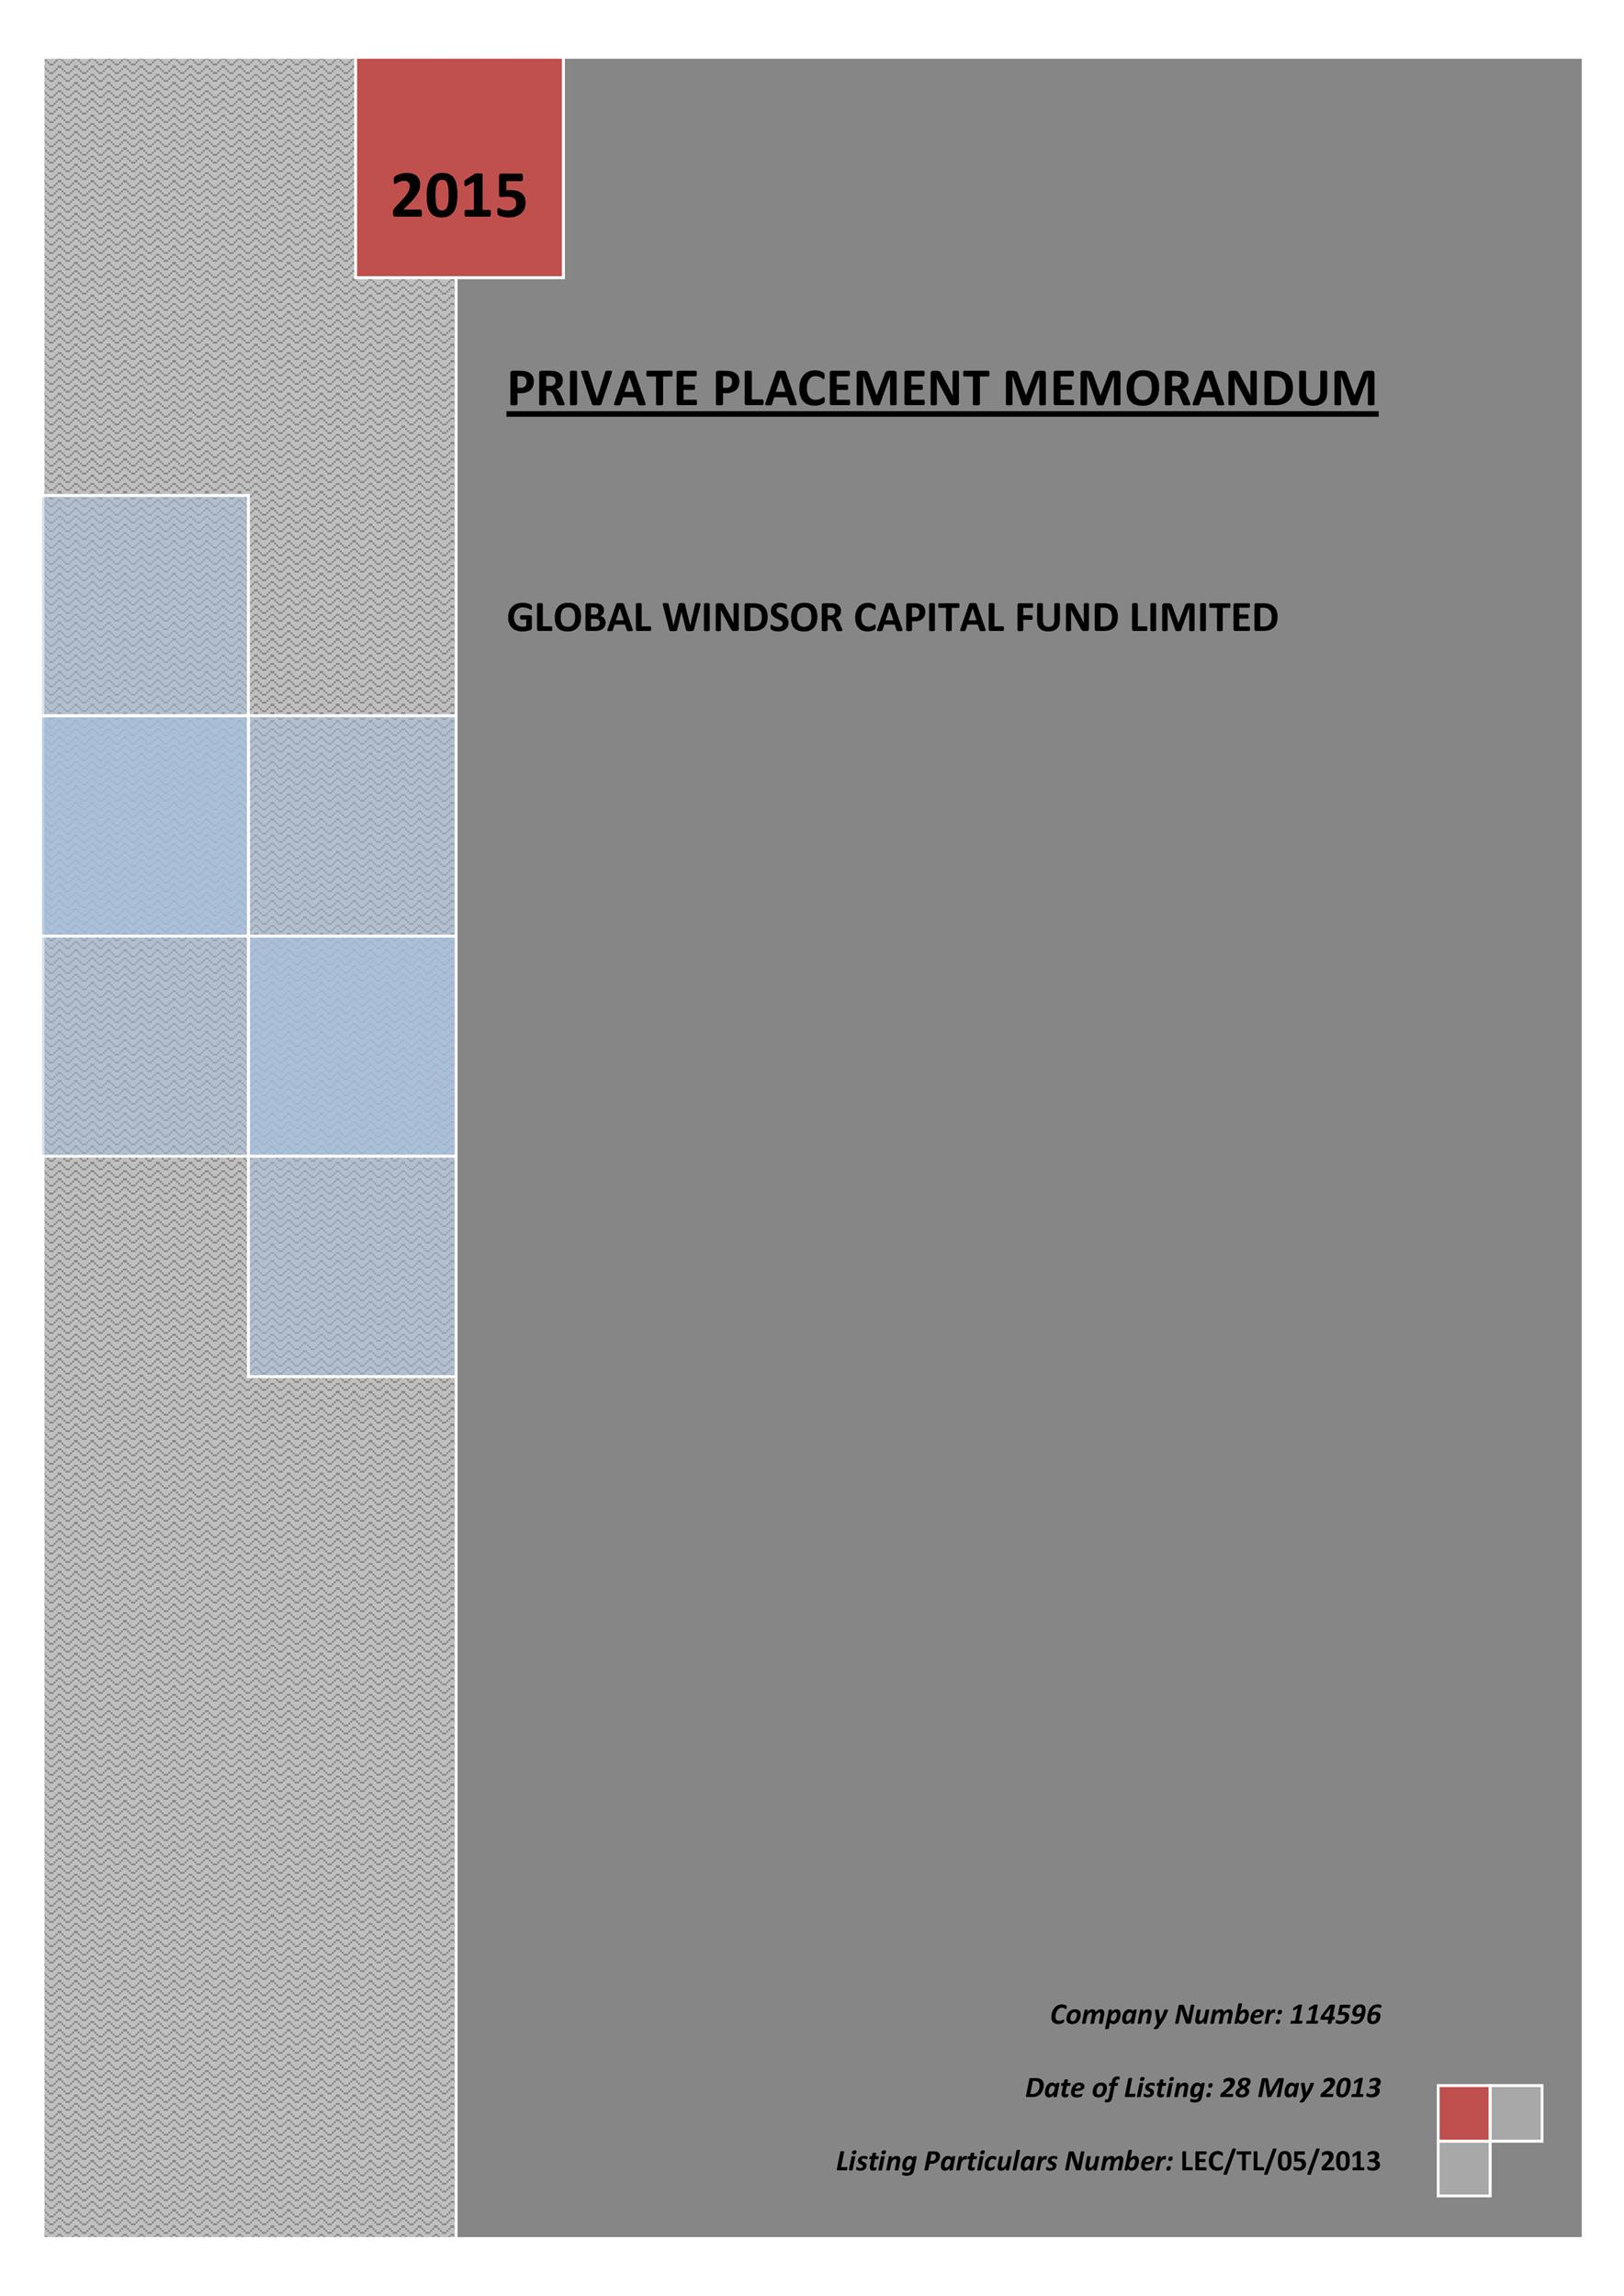 private placement memos memorandum forms - Onwe.bioinnovate.co